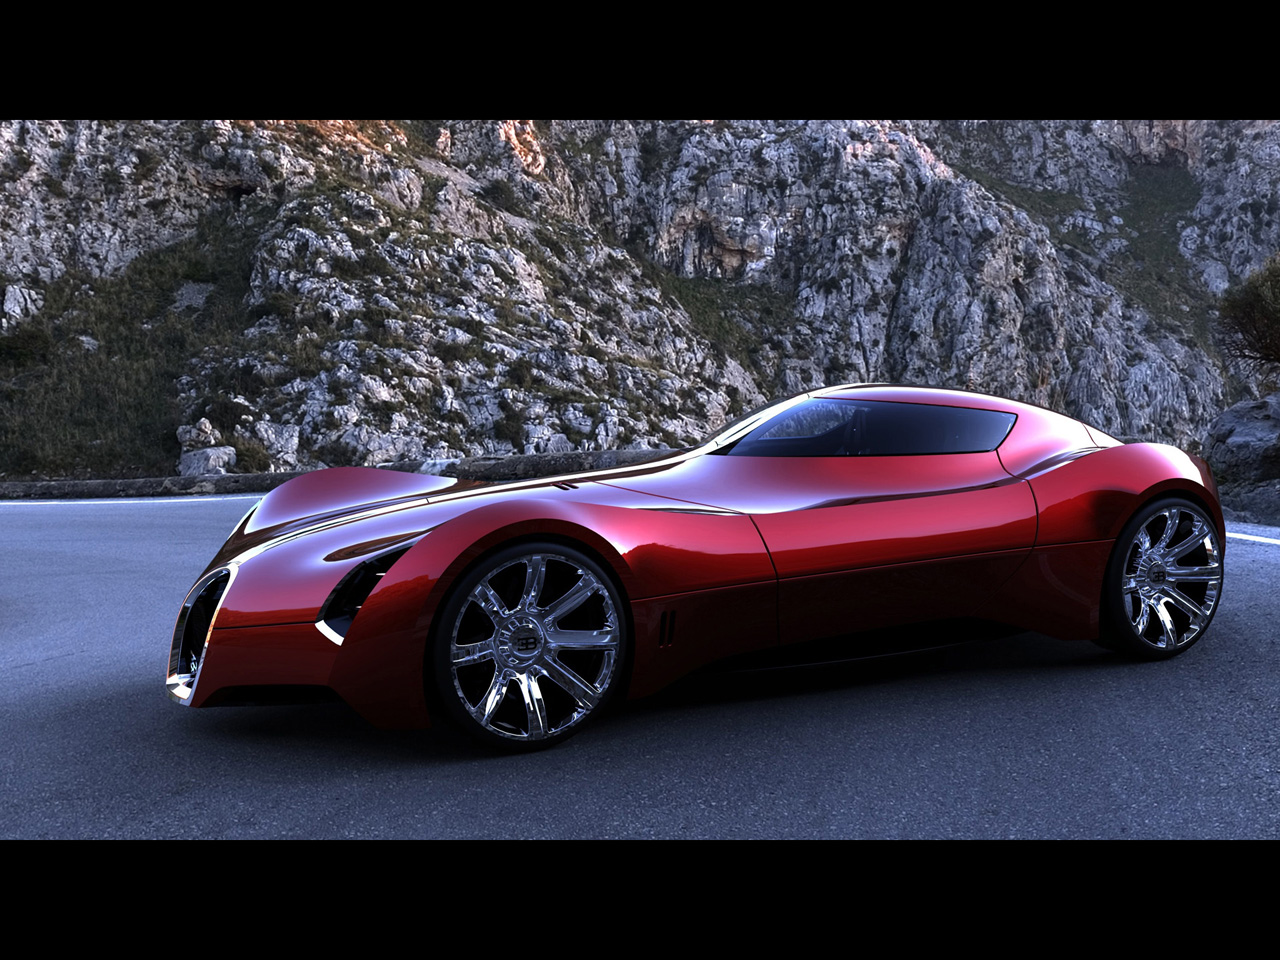 future Bugatti Aerolithe Concept Design by Douglas Hogg Free Download Image